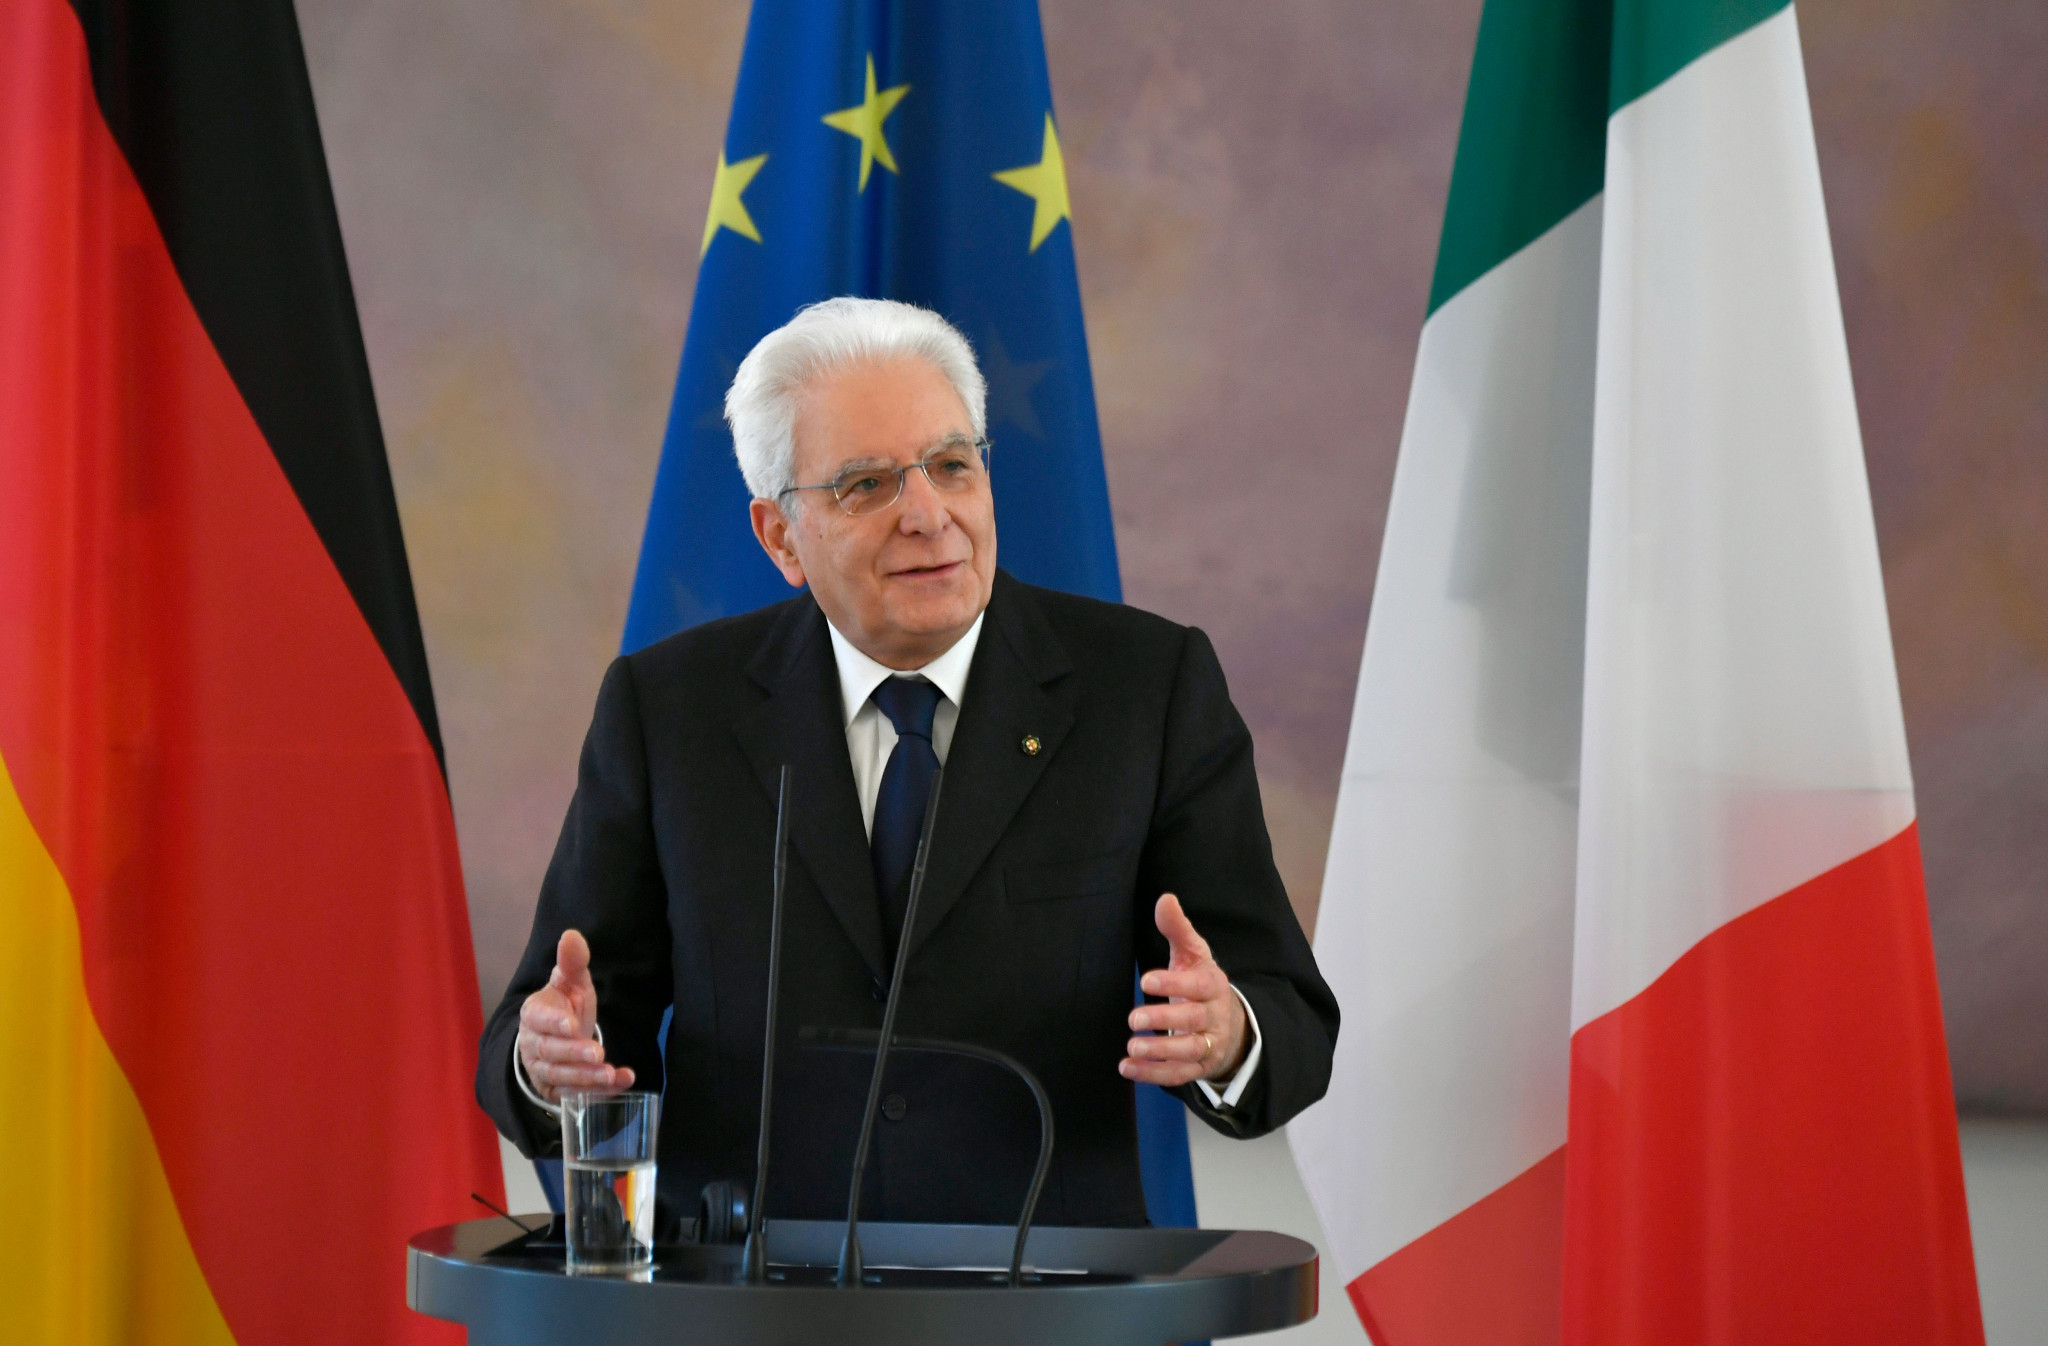 Italy's President Sergio Mattarella has already promised the